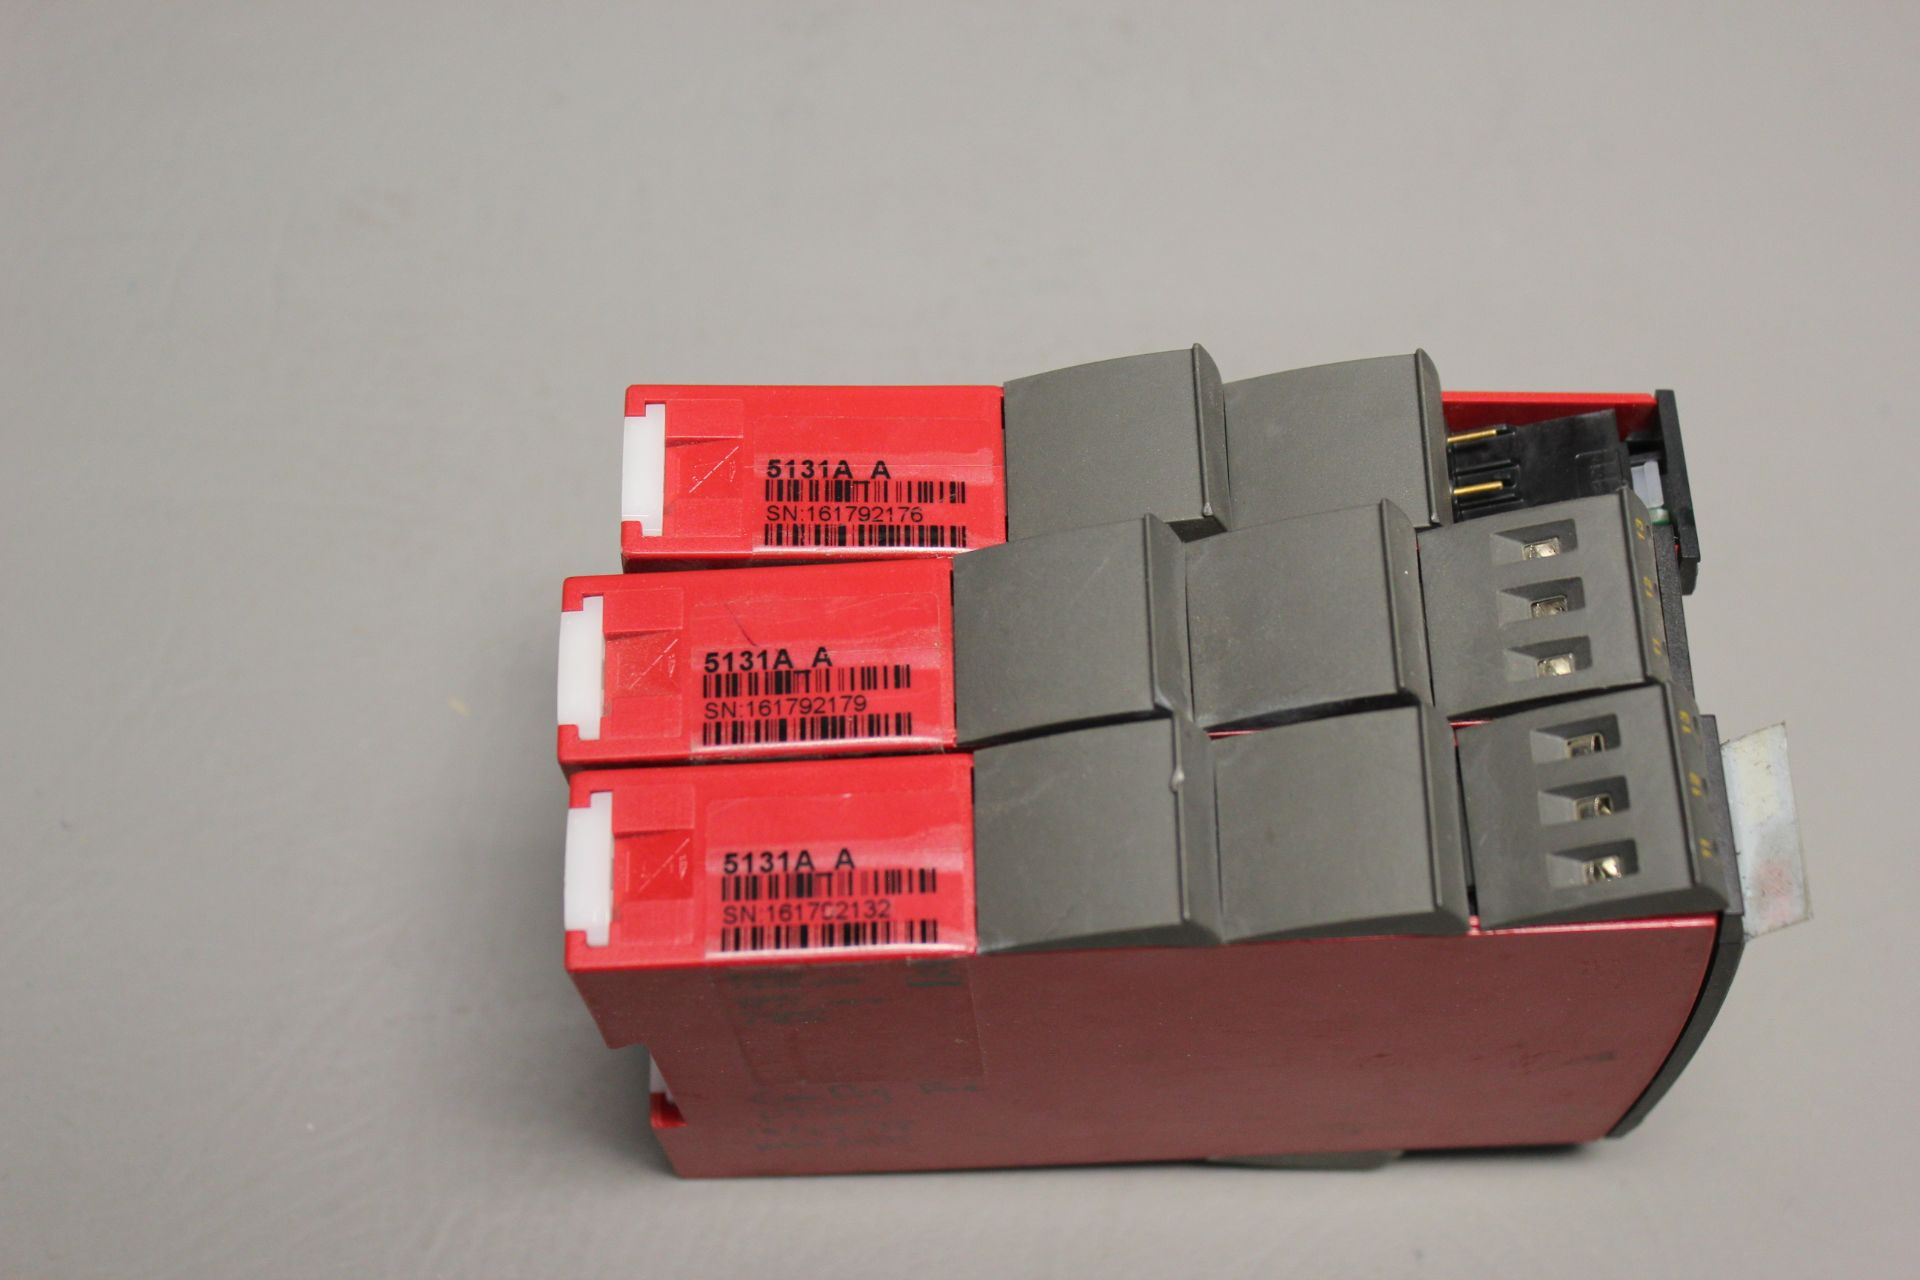 LOT OF PR 2 WIRE PROGRAMMABLE TRANSMITTERS - Image 2 of 3